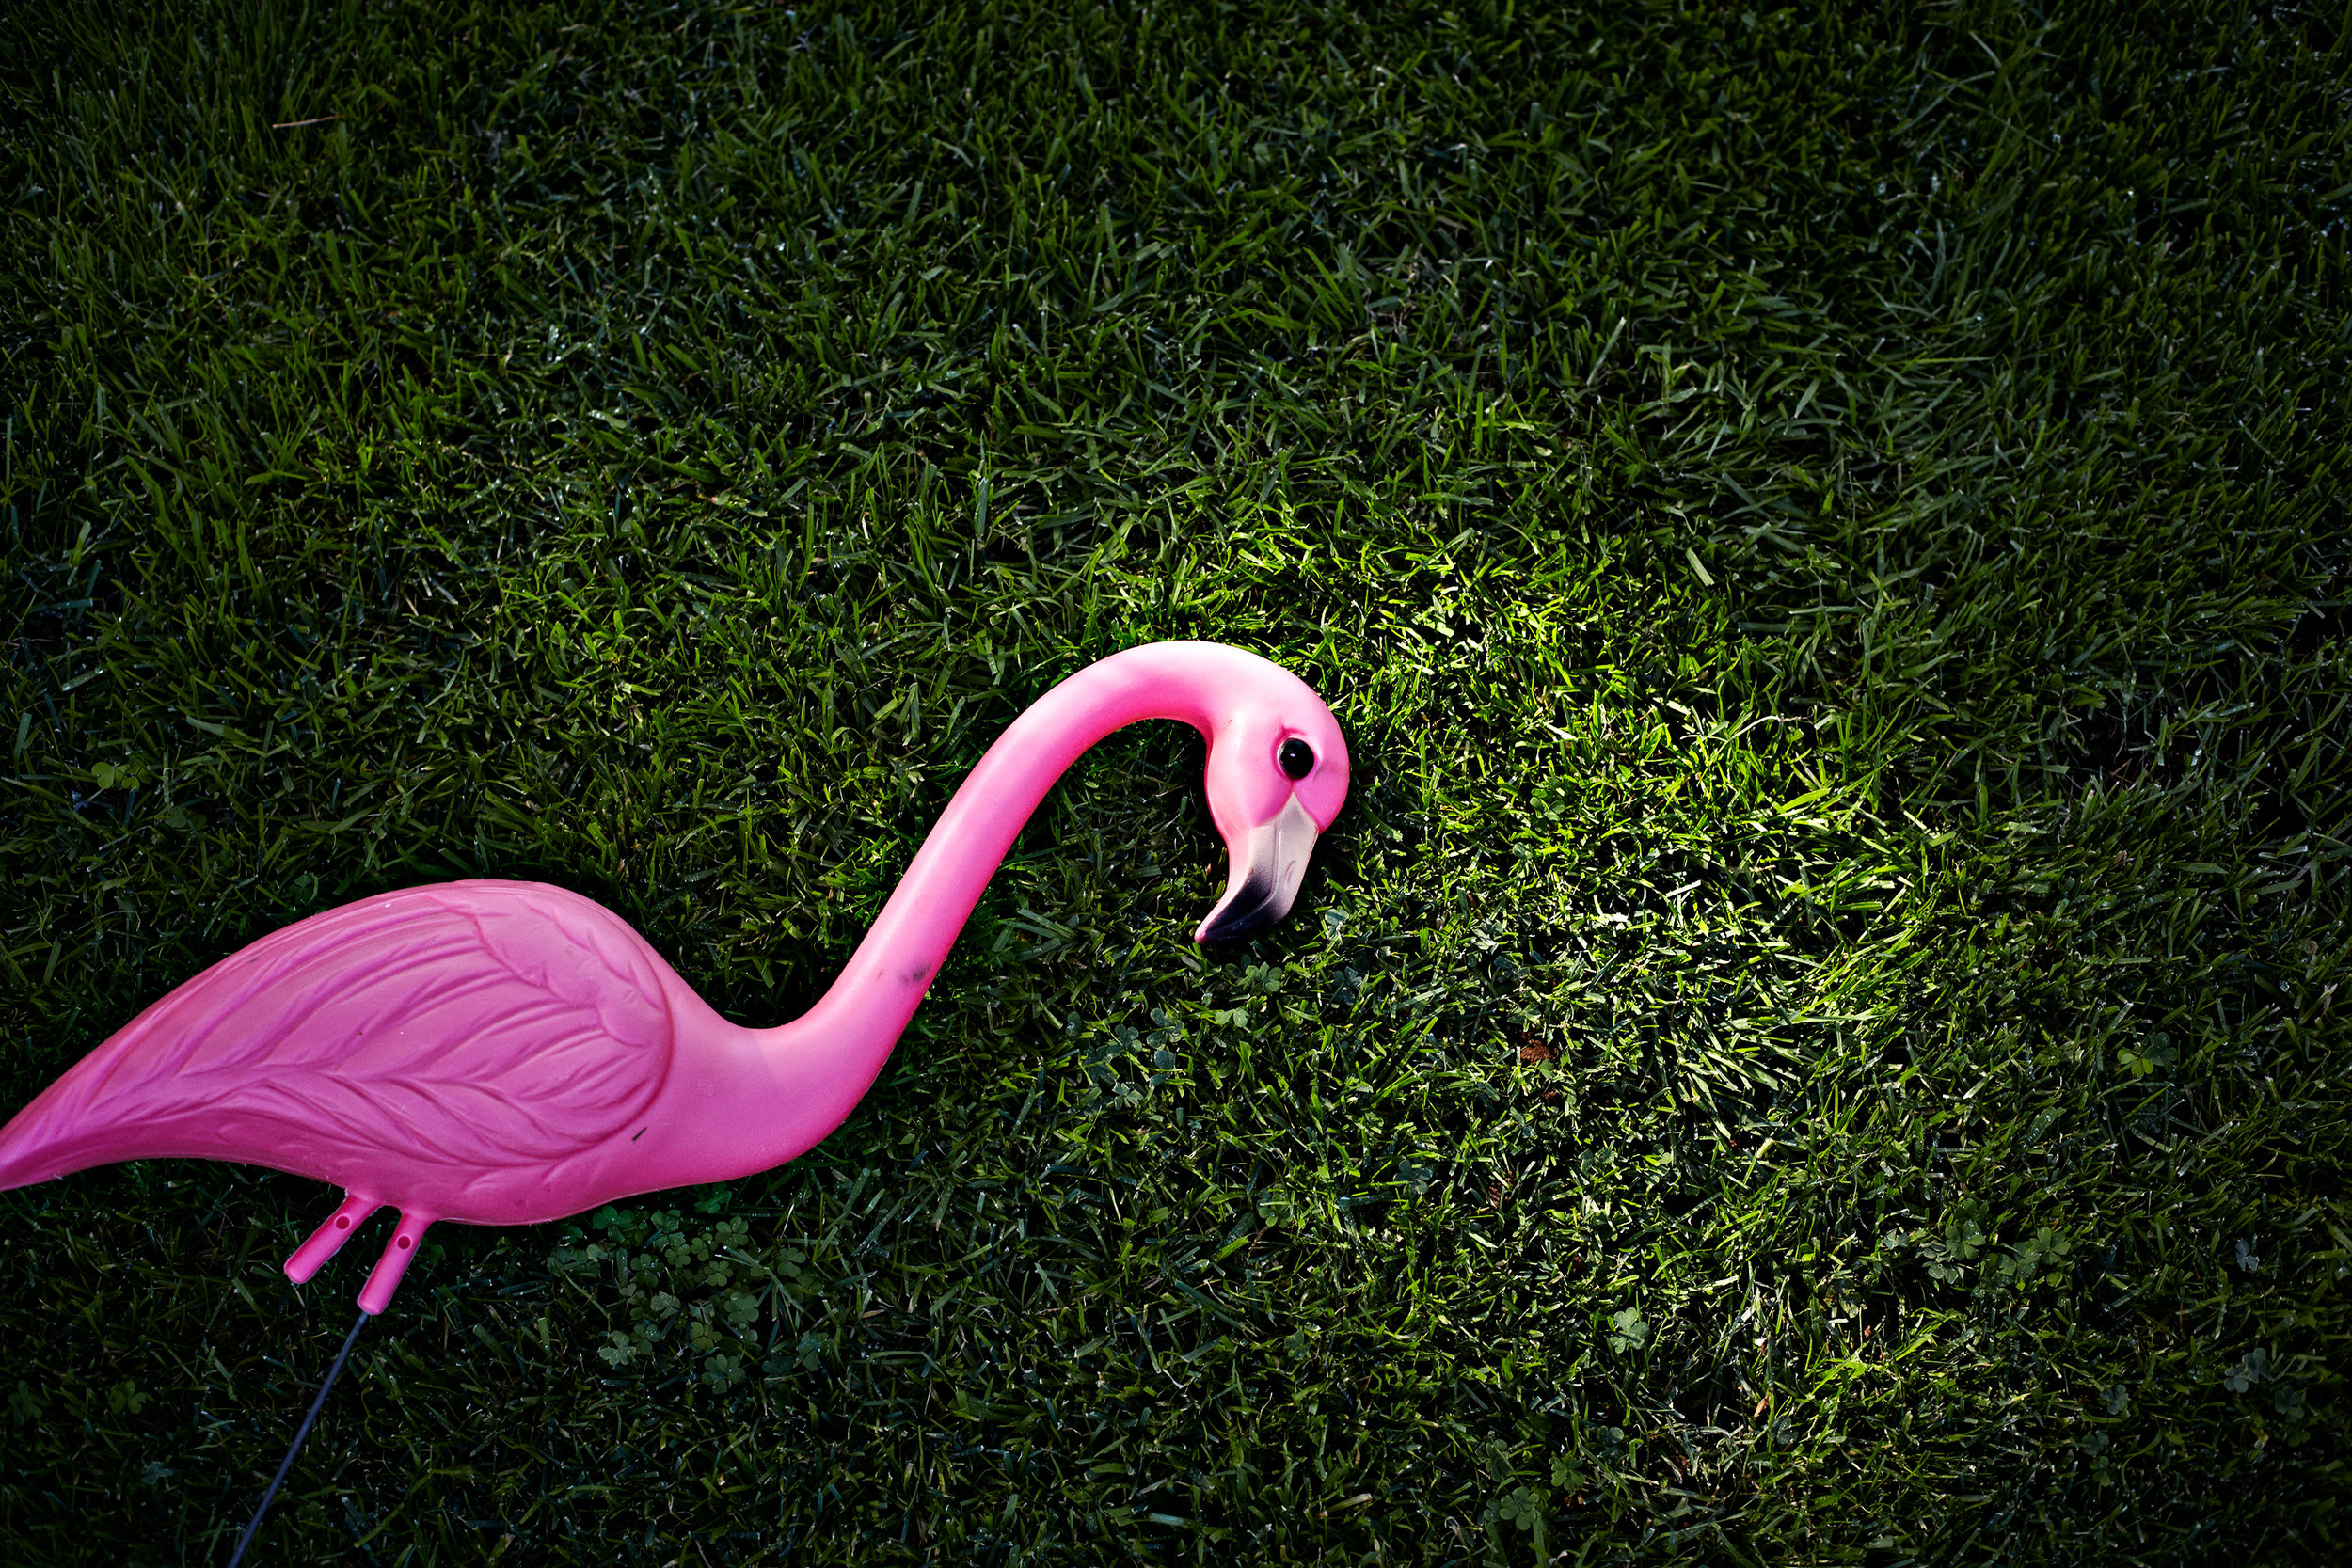 Plastic pink flamingo on green grass